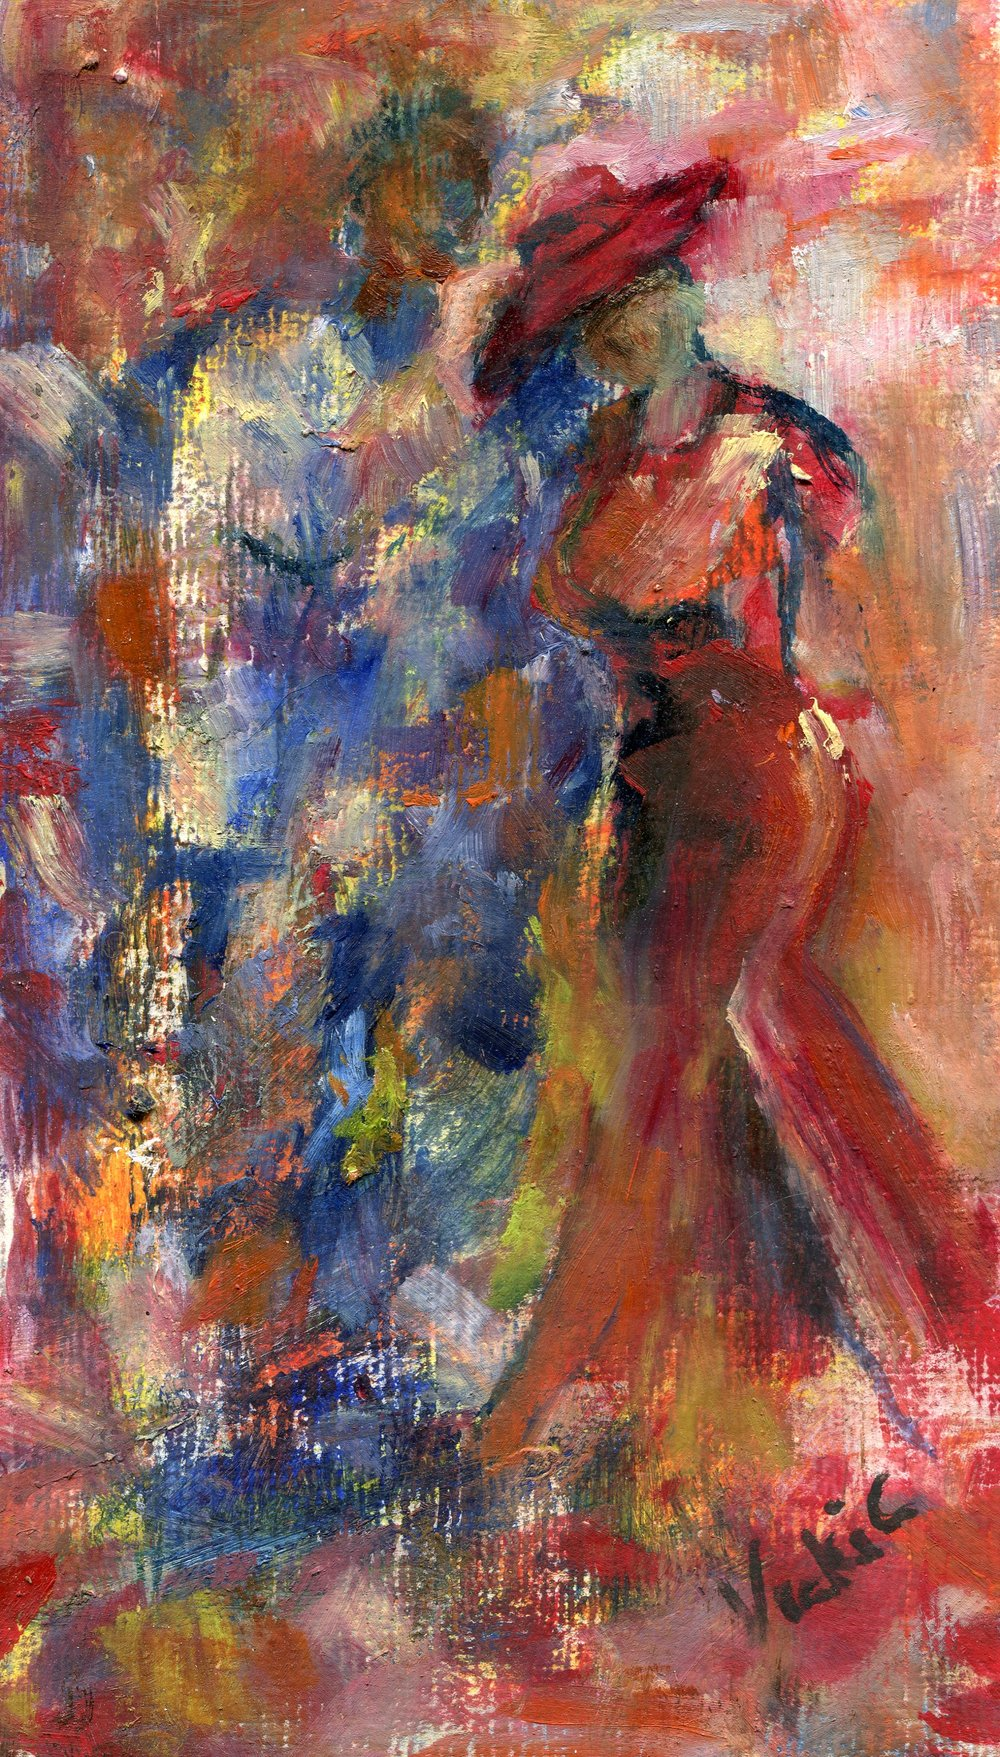 55b  Vicki Cressey  After the dance  acrylic and oil on canvas paper